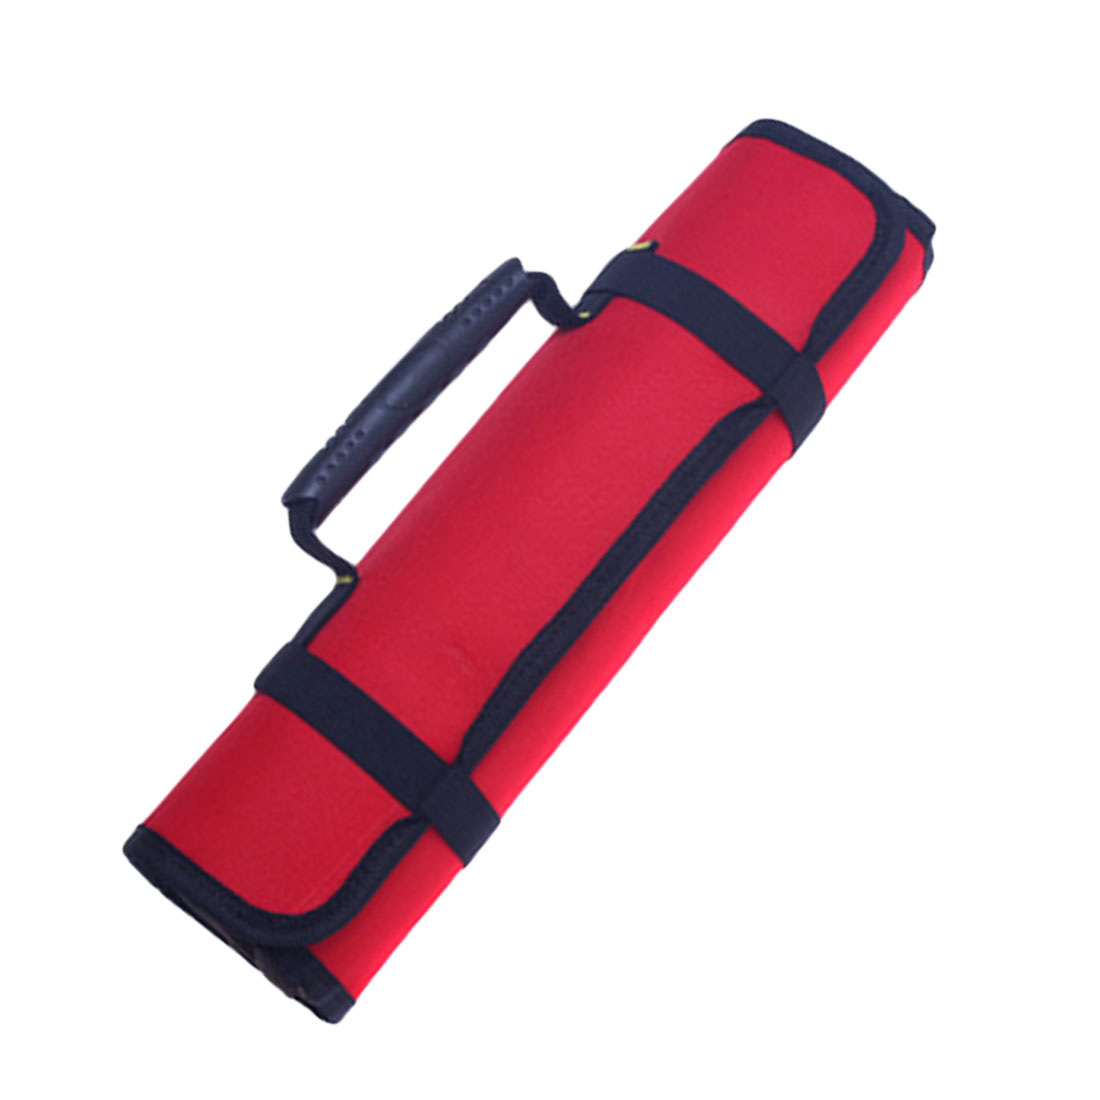 1pcs  Multifunction Tool Bags Practical Carrying Handles Oxford Canvas Chisel Roll Bags For Tool 3 Colors Instrument Case